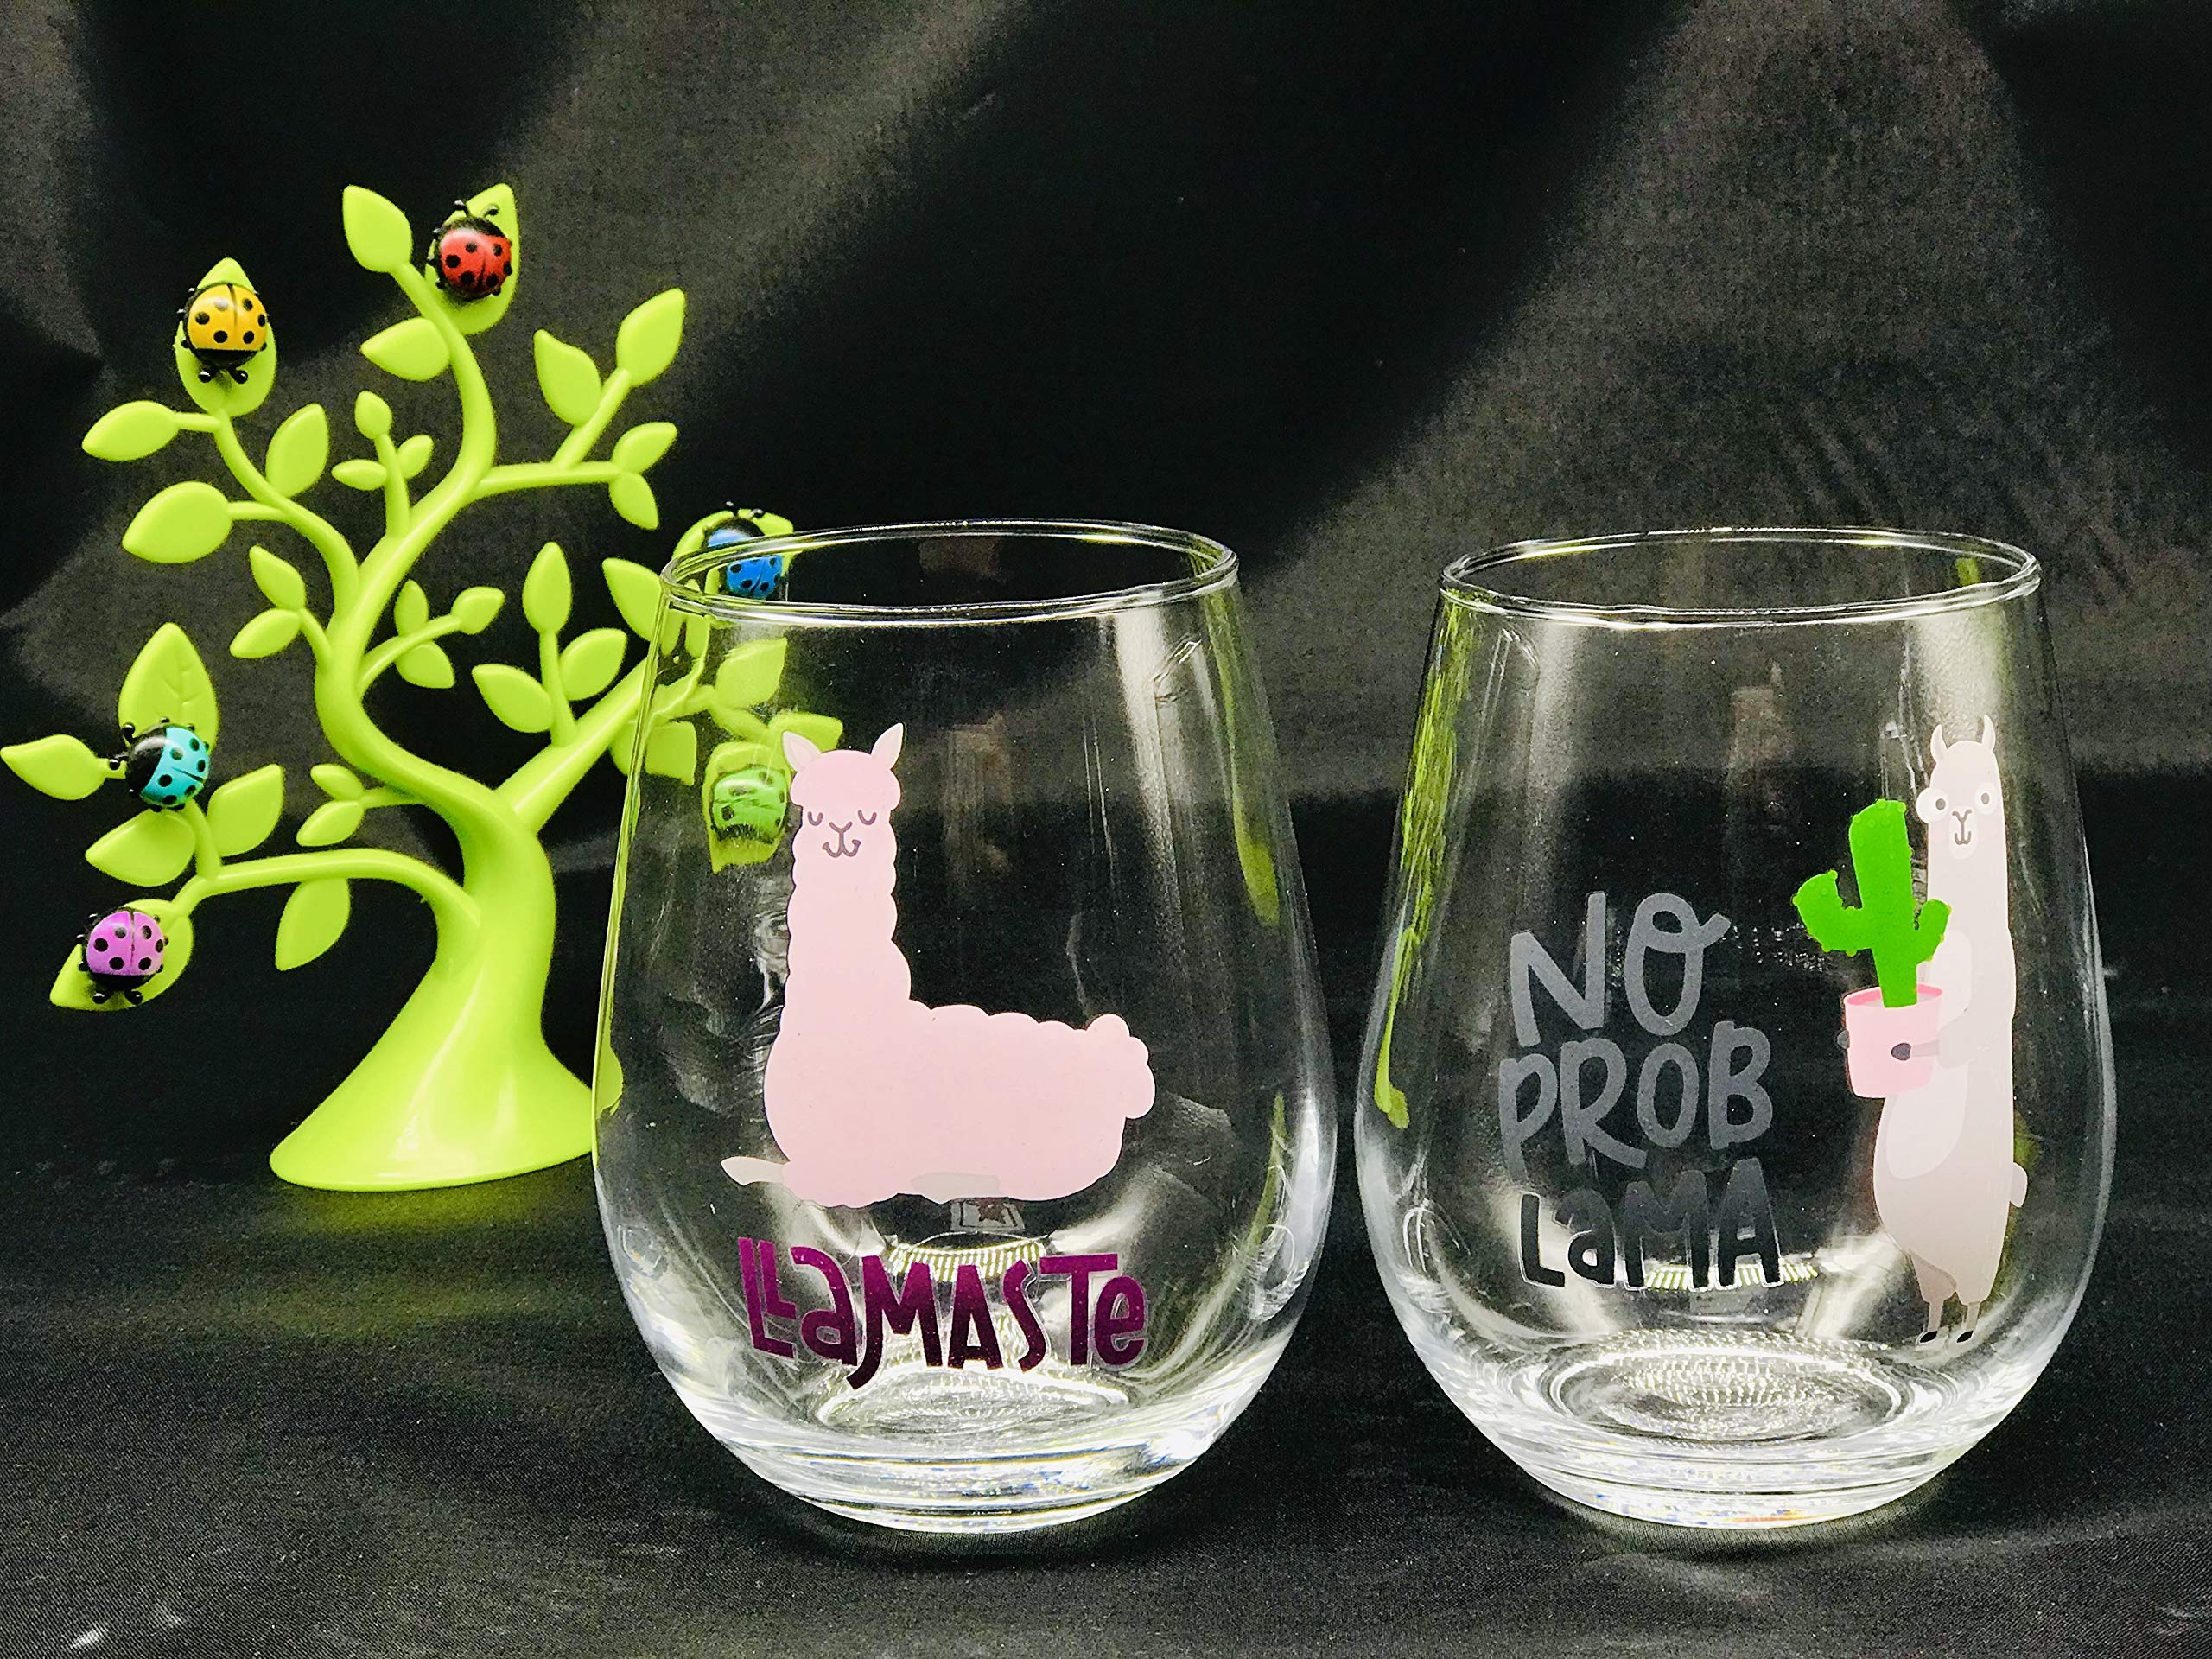 No Prob lama and Llamaste,Funny Llama Stemless 22oz Wine Glass set of 2 Happy Valentine Gift, birthday gift, for couple, boy friend girl friend best friend anniversary gift his her wedding gift